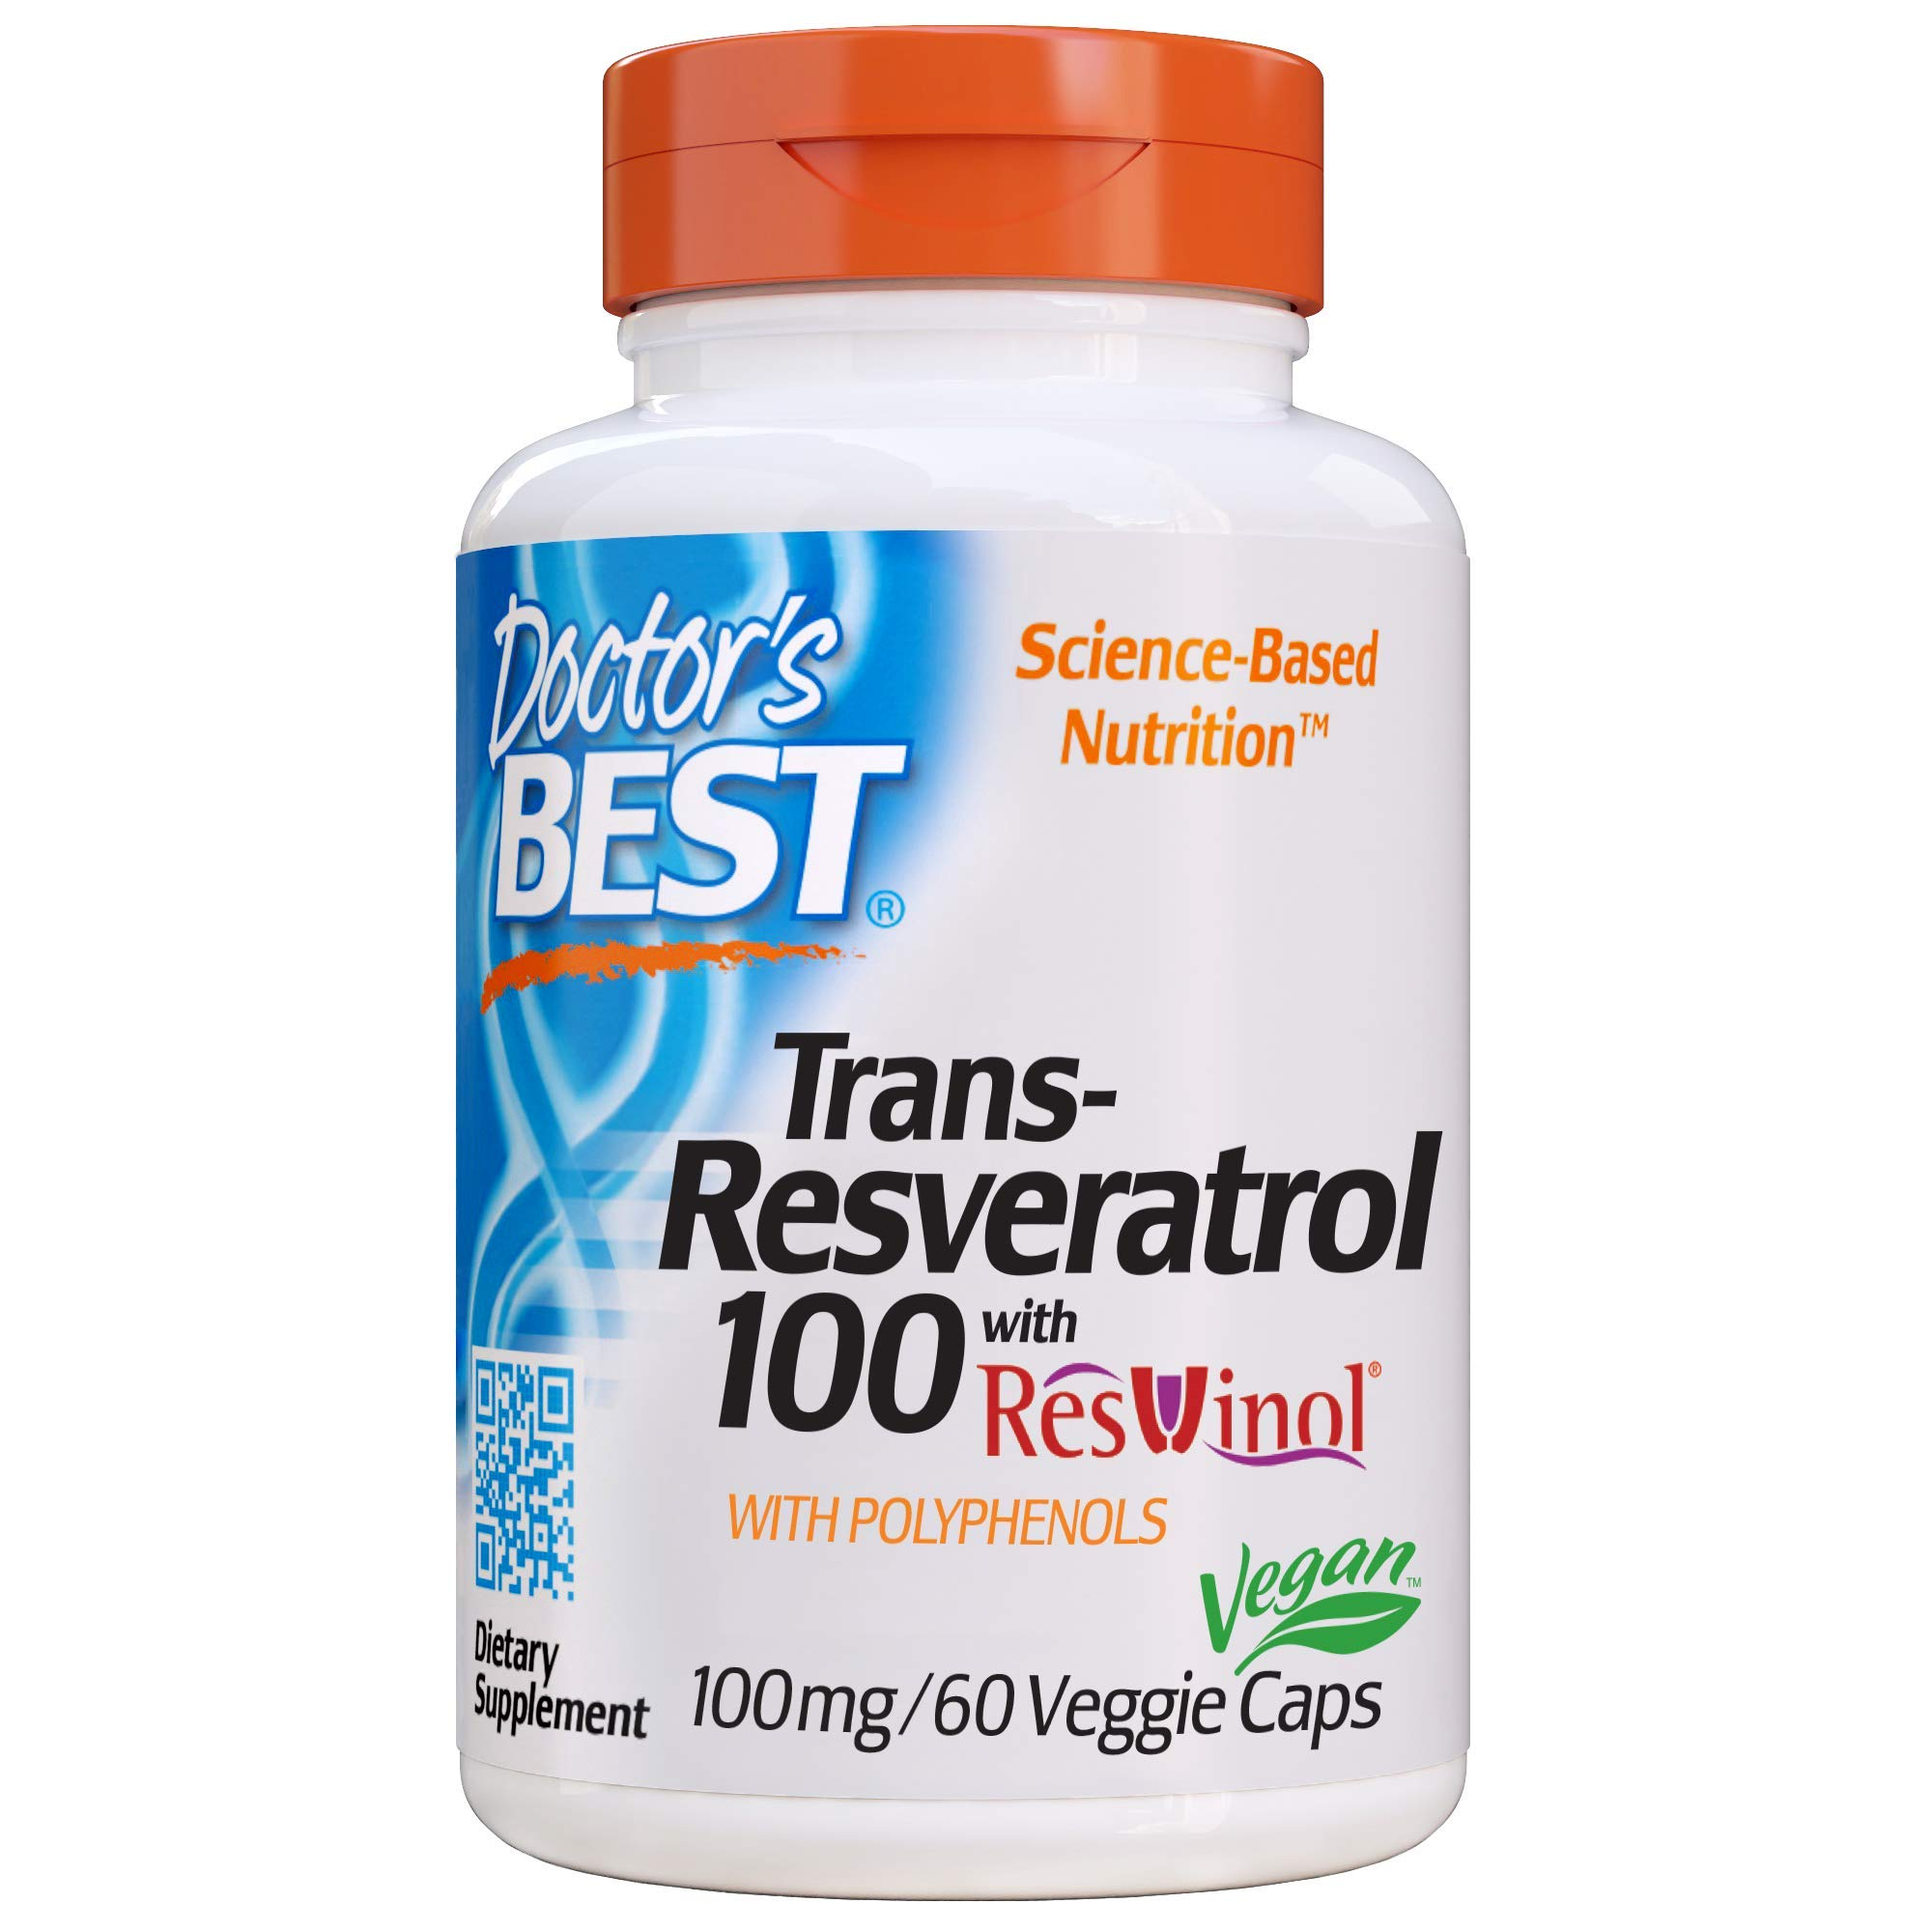 Doctor's Best, Trans-Resveratrol with Resvinol, Non-GMO, Vegan, Gluten Free, Soy Free, 100 mg, 60 Veggie Caps by Doctor's Best